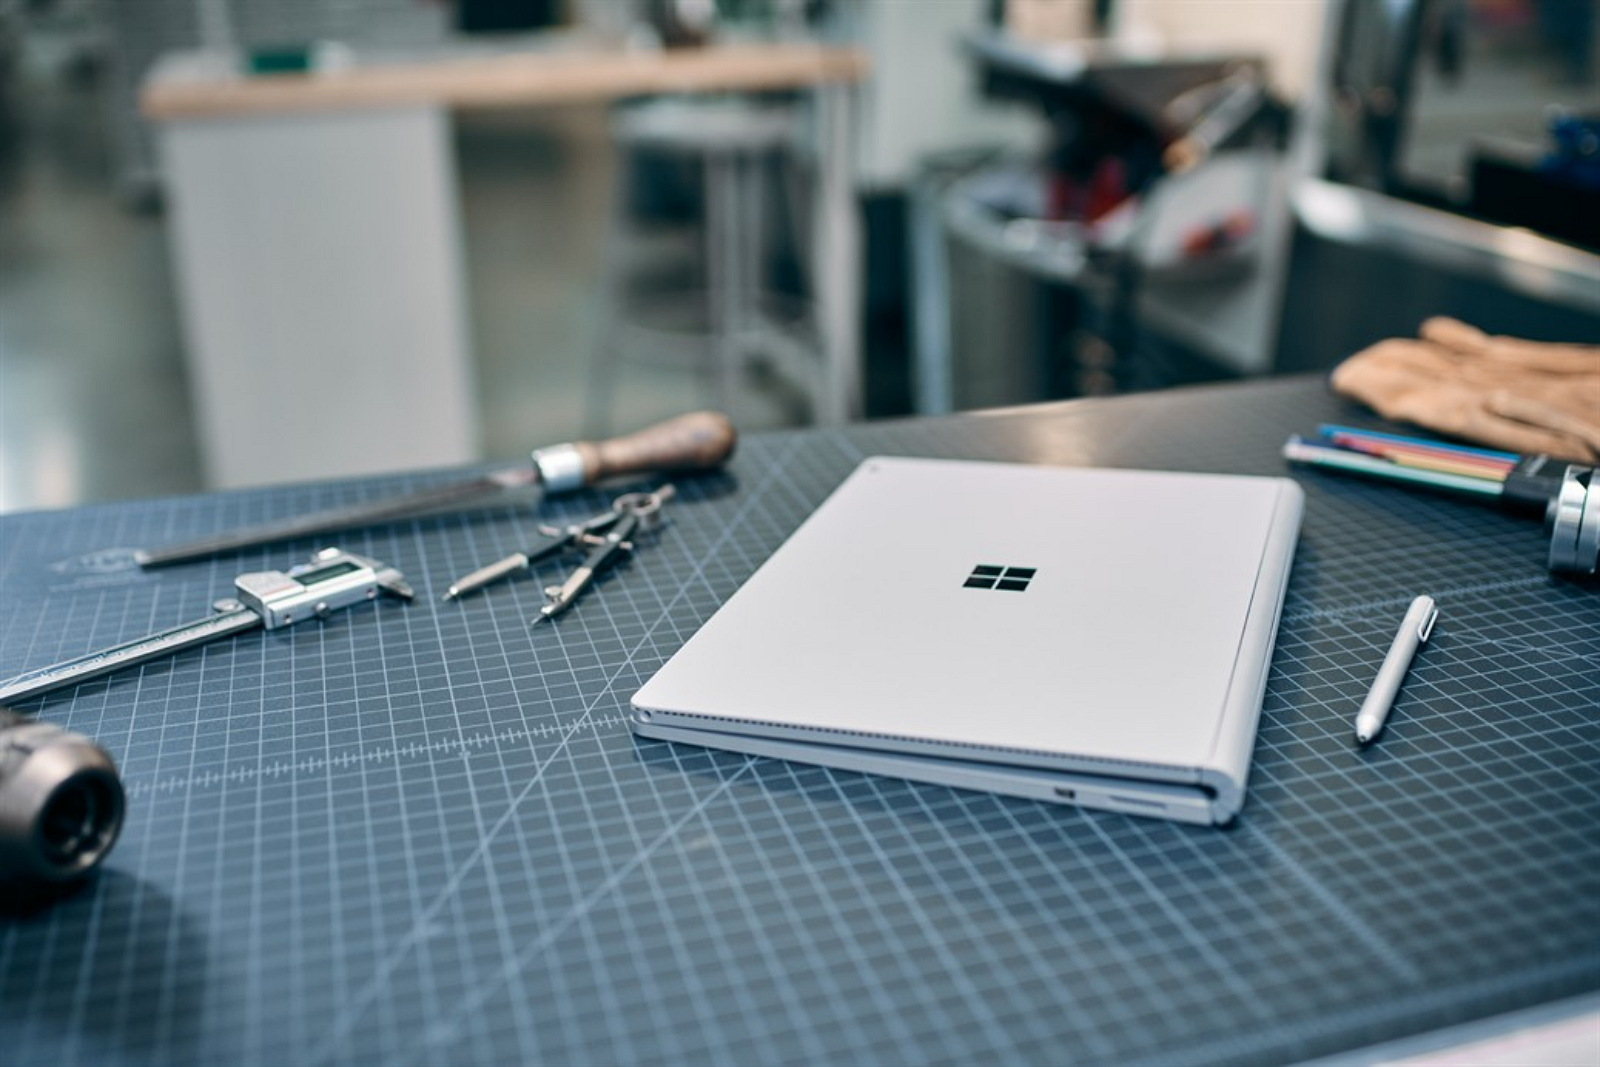 Surface Book on drafting table